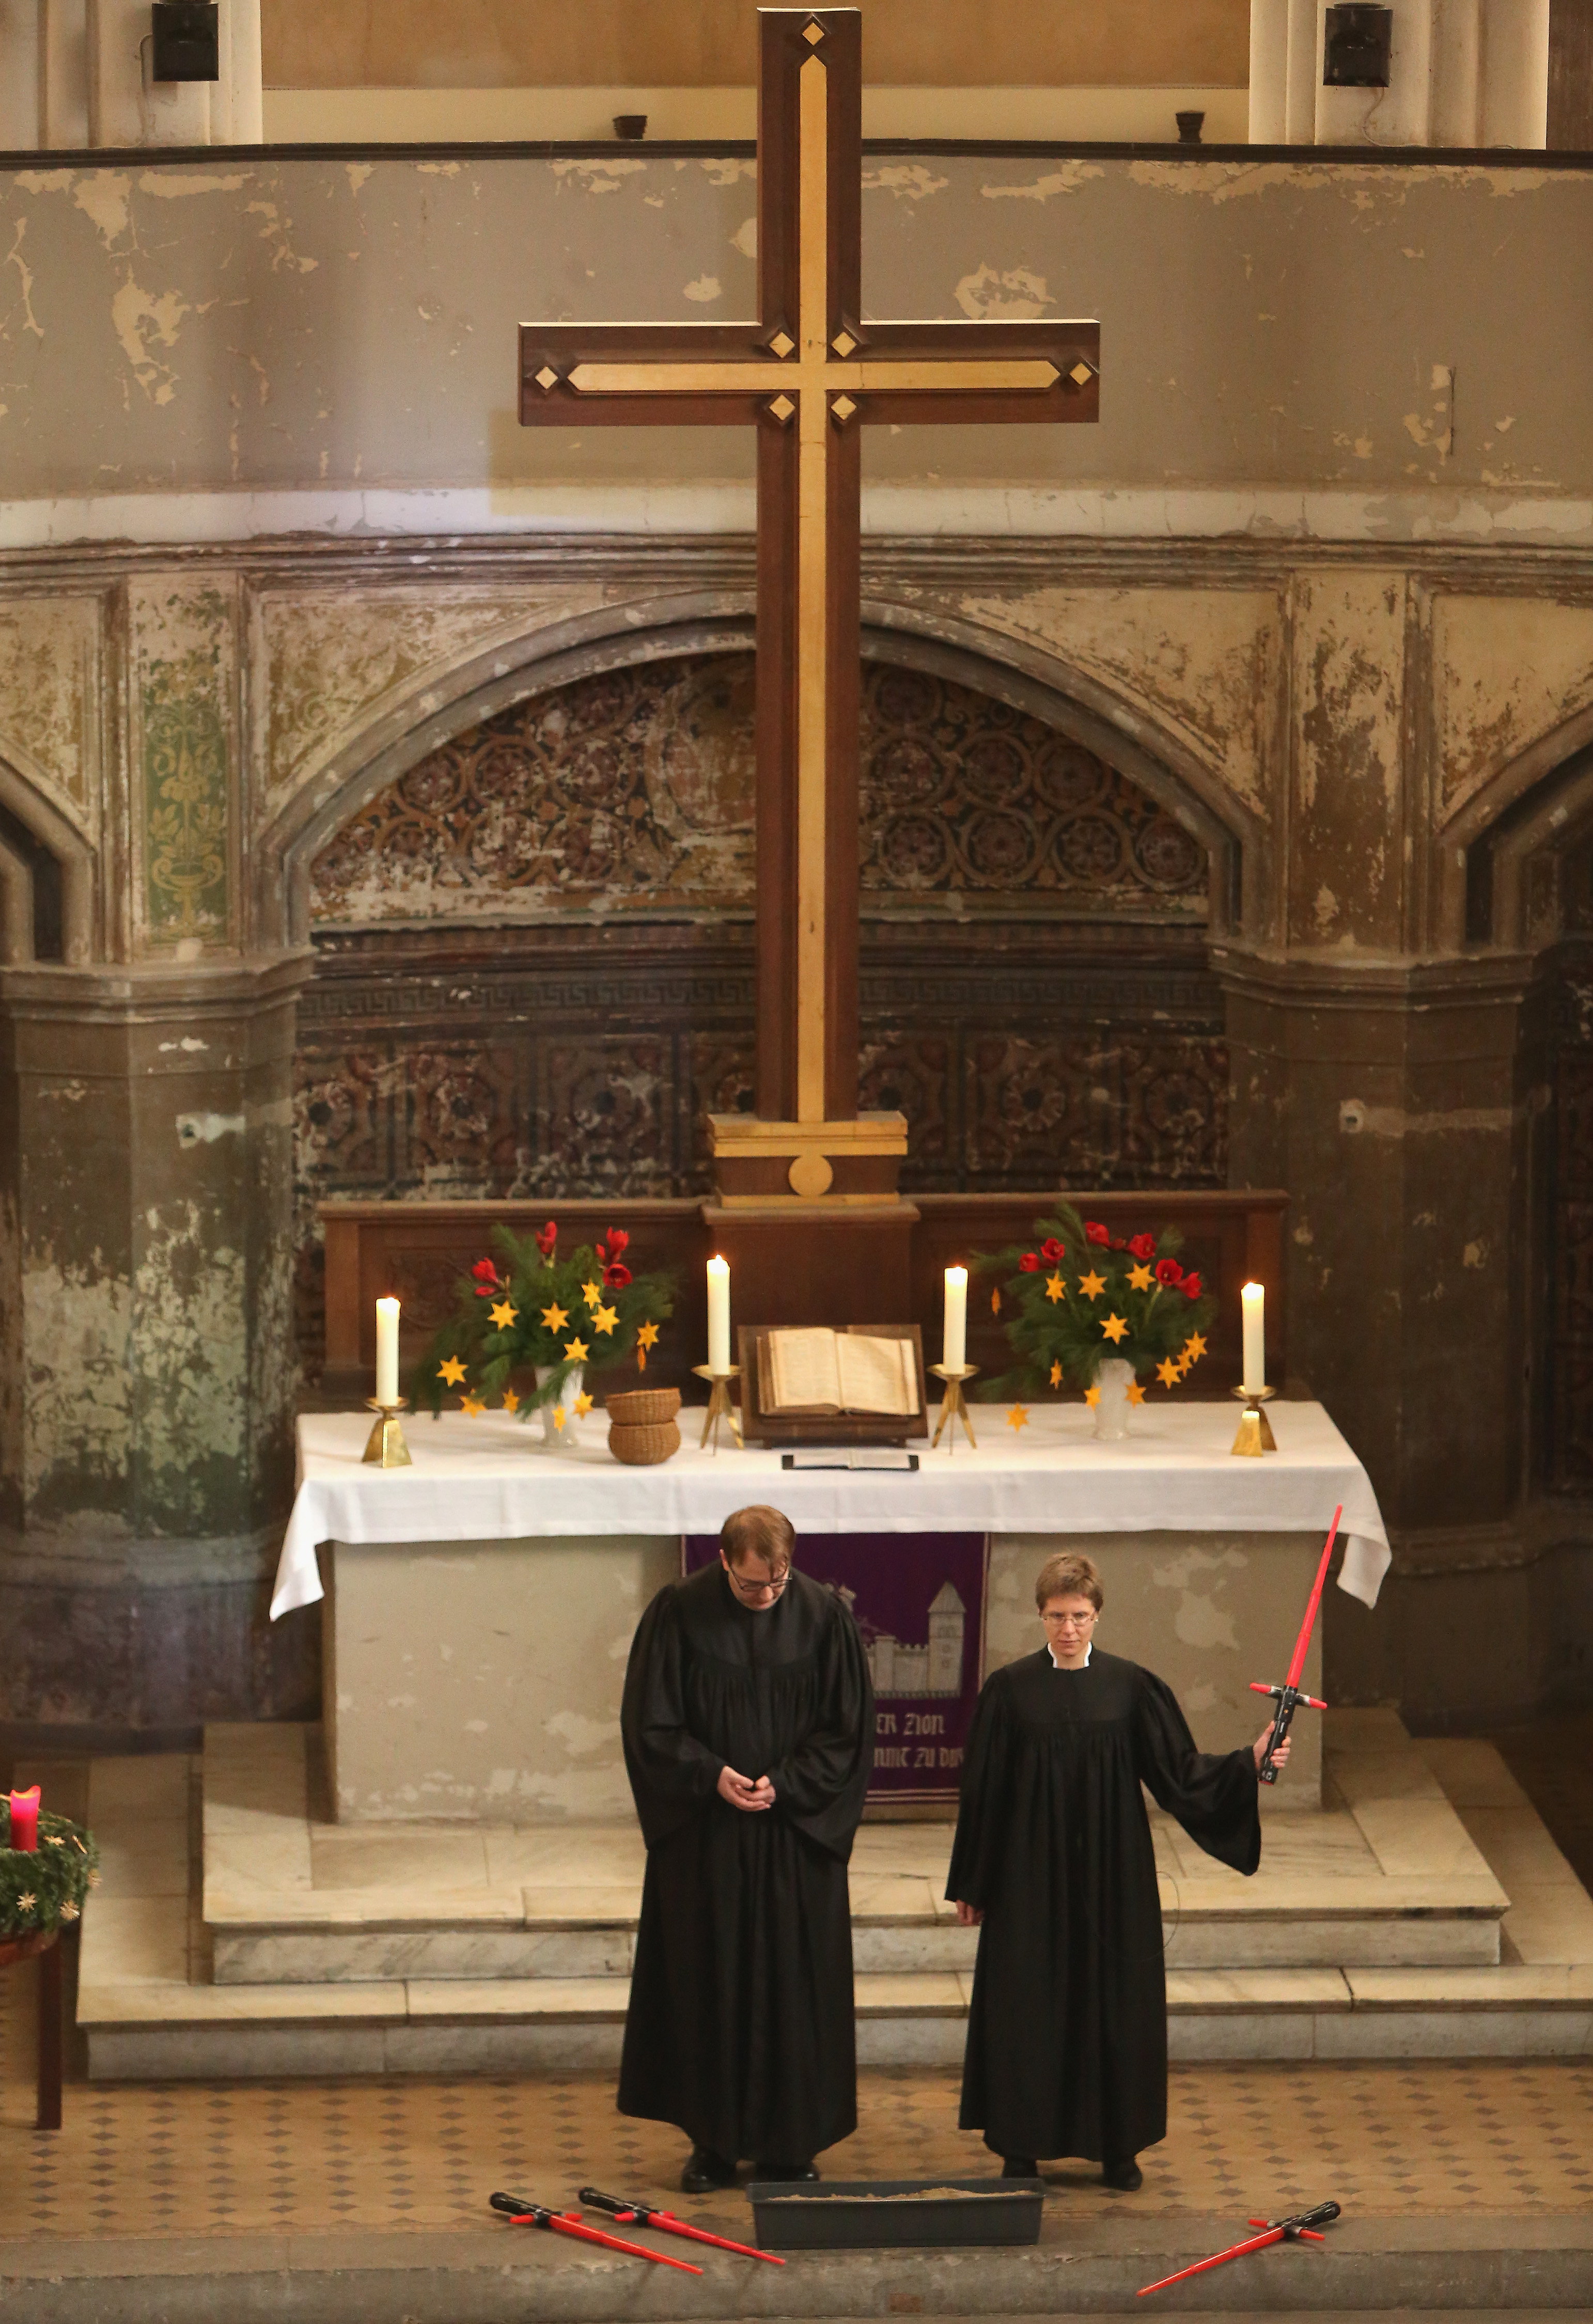 BERLIN, GERMANY - DECEMBER 20:  Vicars Lucas Ludewig (L) and Ulrike Garve hold a church service centered around the 1983 film 'Star Wars Episode VI: Return of the Jedi' at the Zionskirche (Zion Church) on December 20, 2015 in Berlin, Germany. The latest Star Wars film, 'Star Wars Episode VII: The Force Awakens,' was released in the country two days earlier, and local priests used the opportunity to tie Biblical parallels concerning good and evil to the movie, while using the original film's score by John Williams as organ accompaniment, along with video clips.  (Photo by Adam Berry/Getty Images)